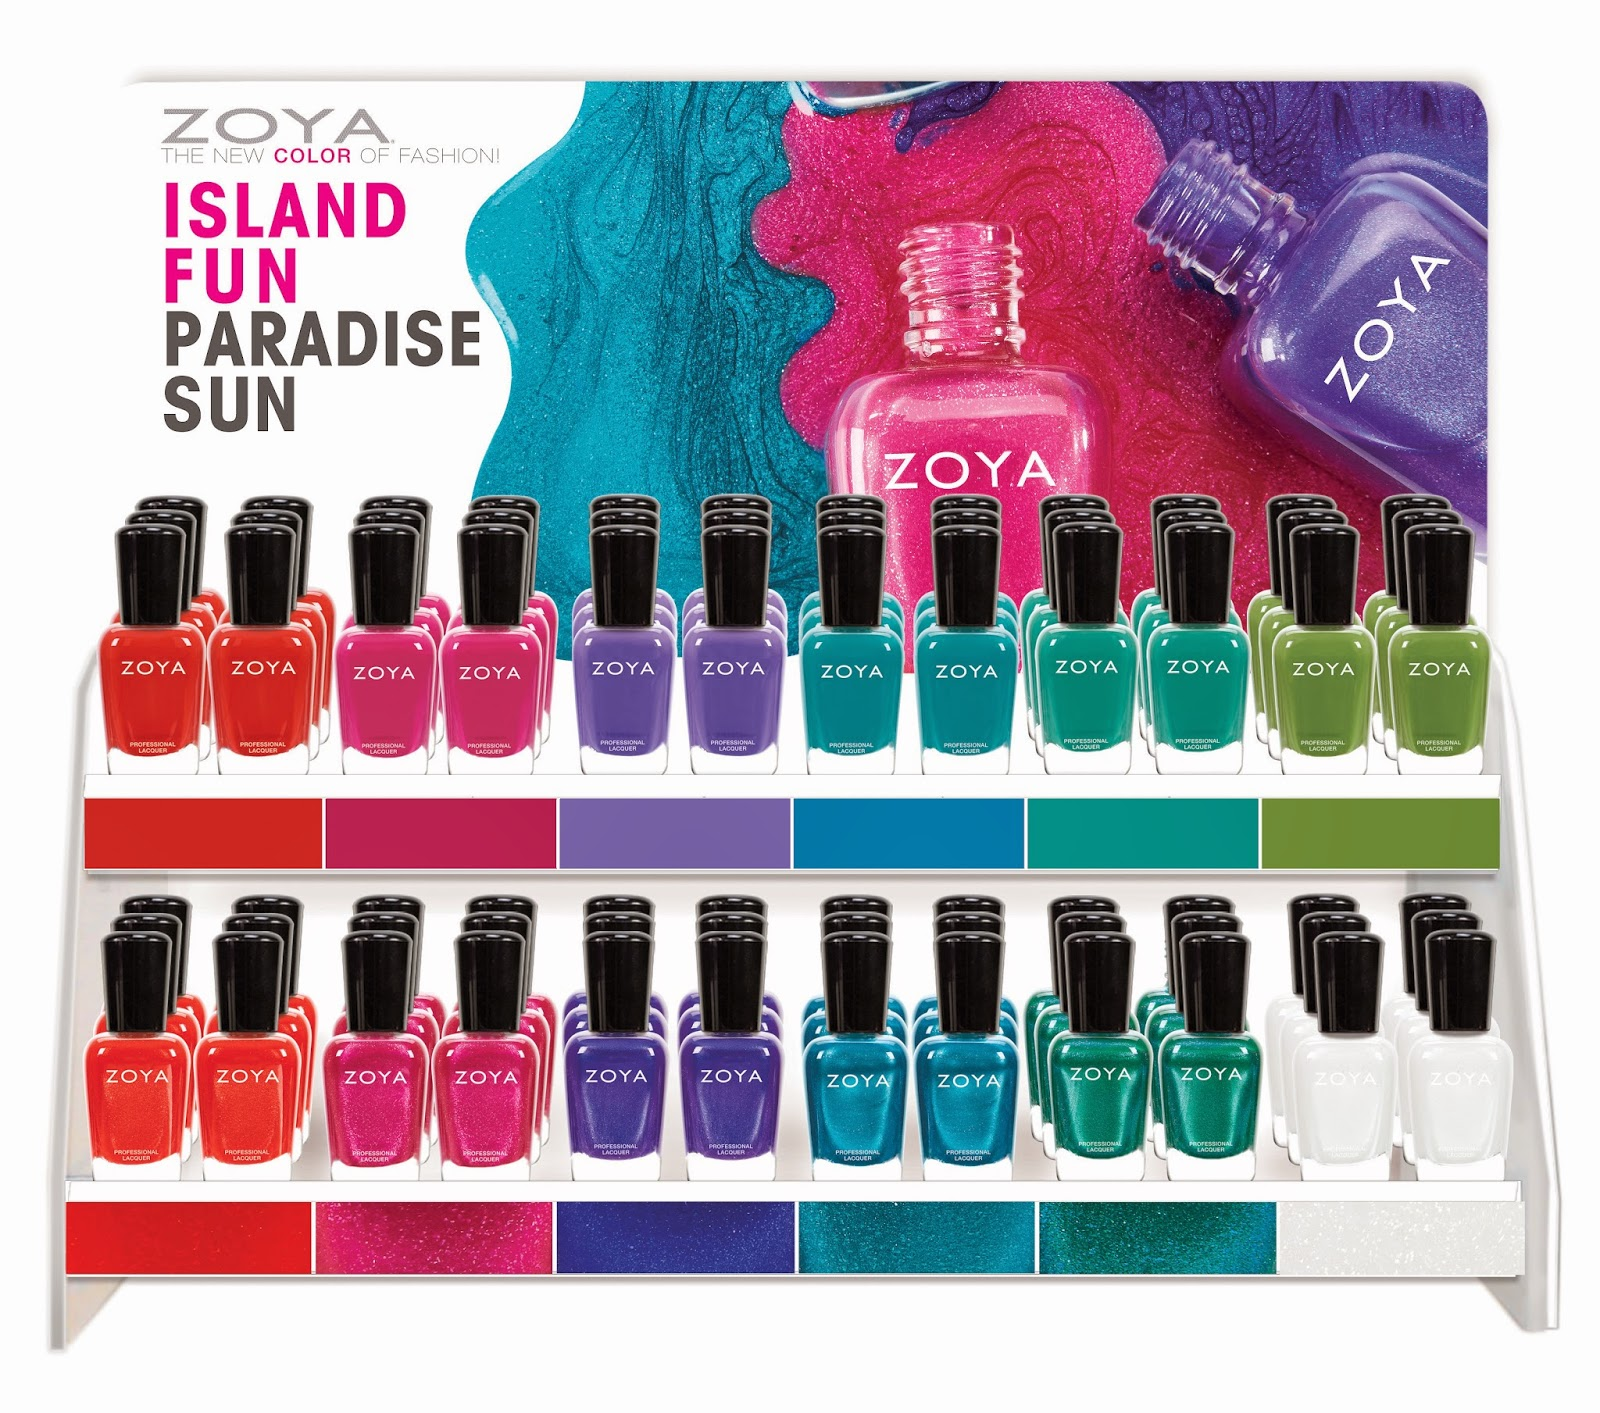 Zoya Island Fun & Paradise Sun Summer Collections 2015 - Press Release